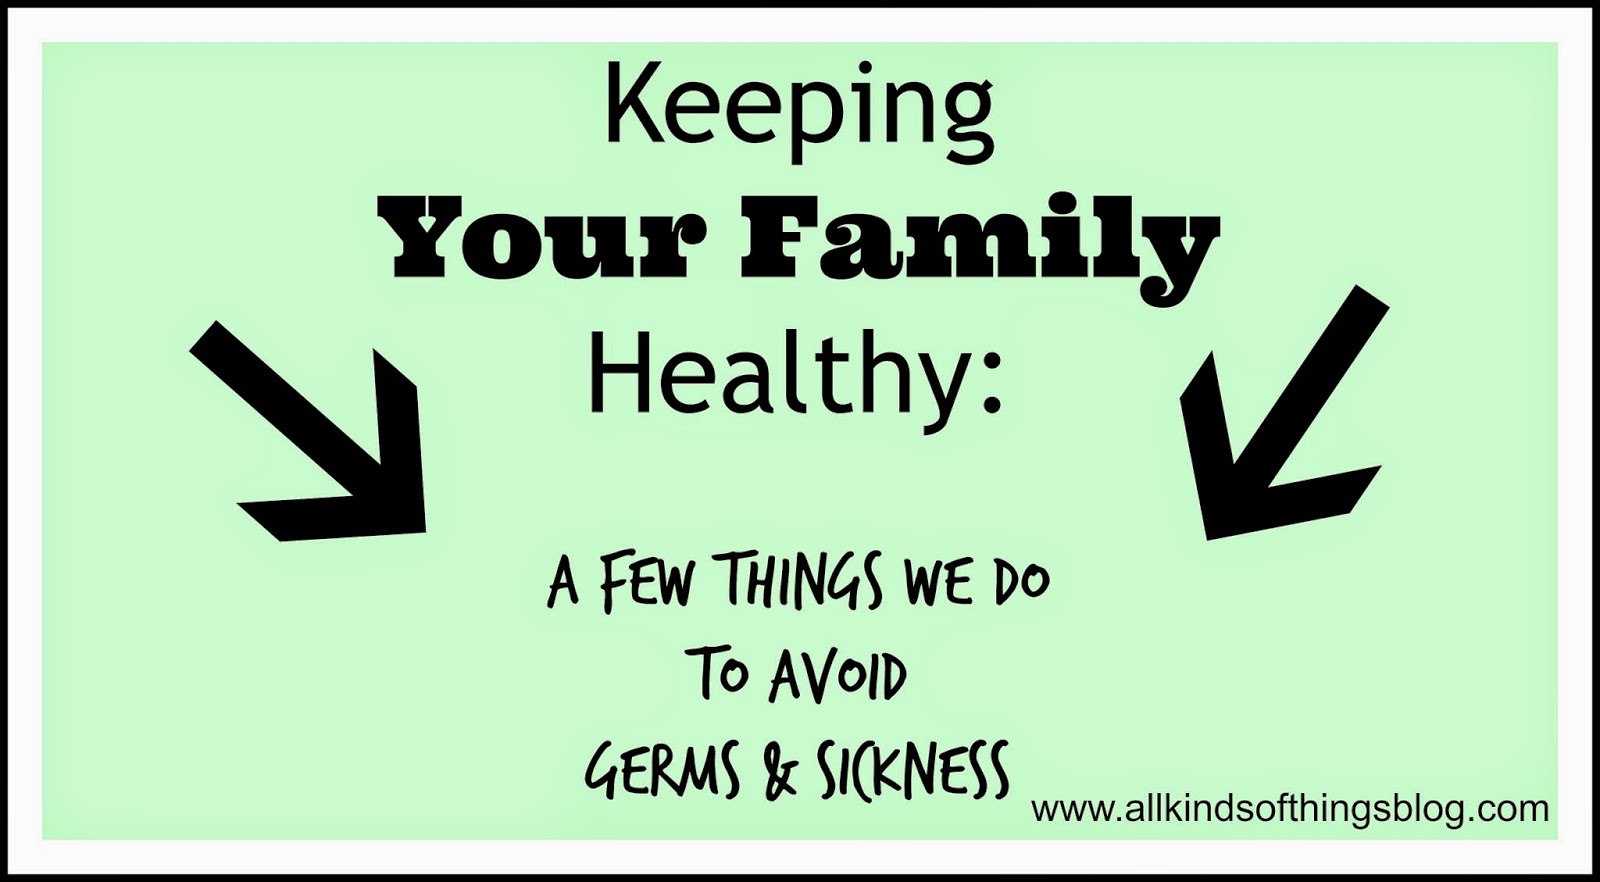 Keeping Your Family Healthy: A Few Things We Do to Avoid Germs & Sickness